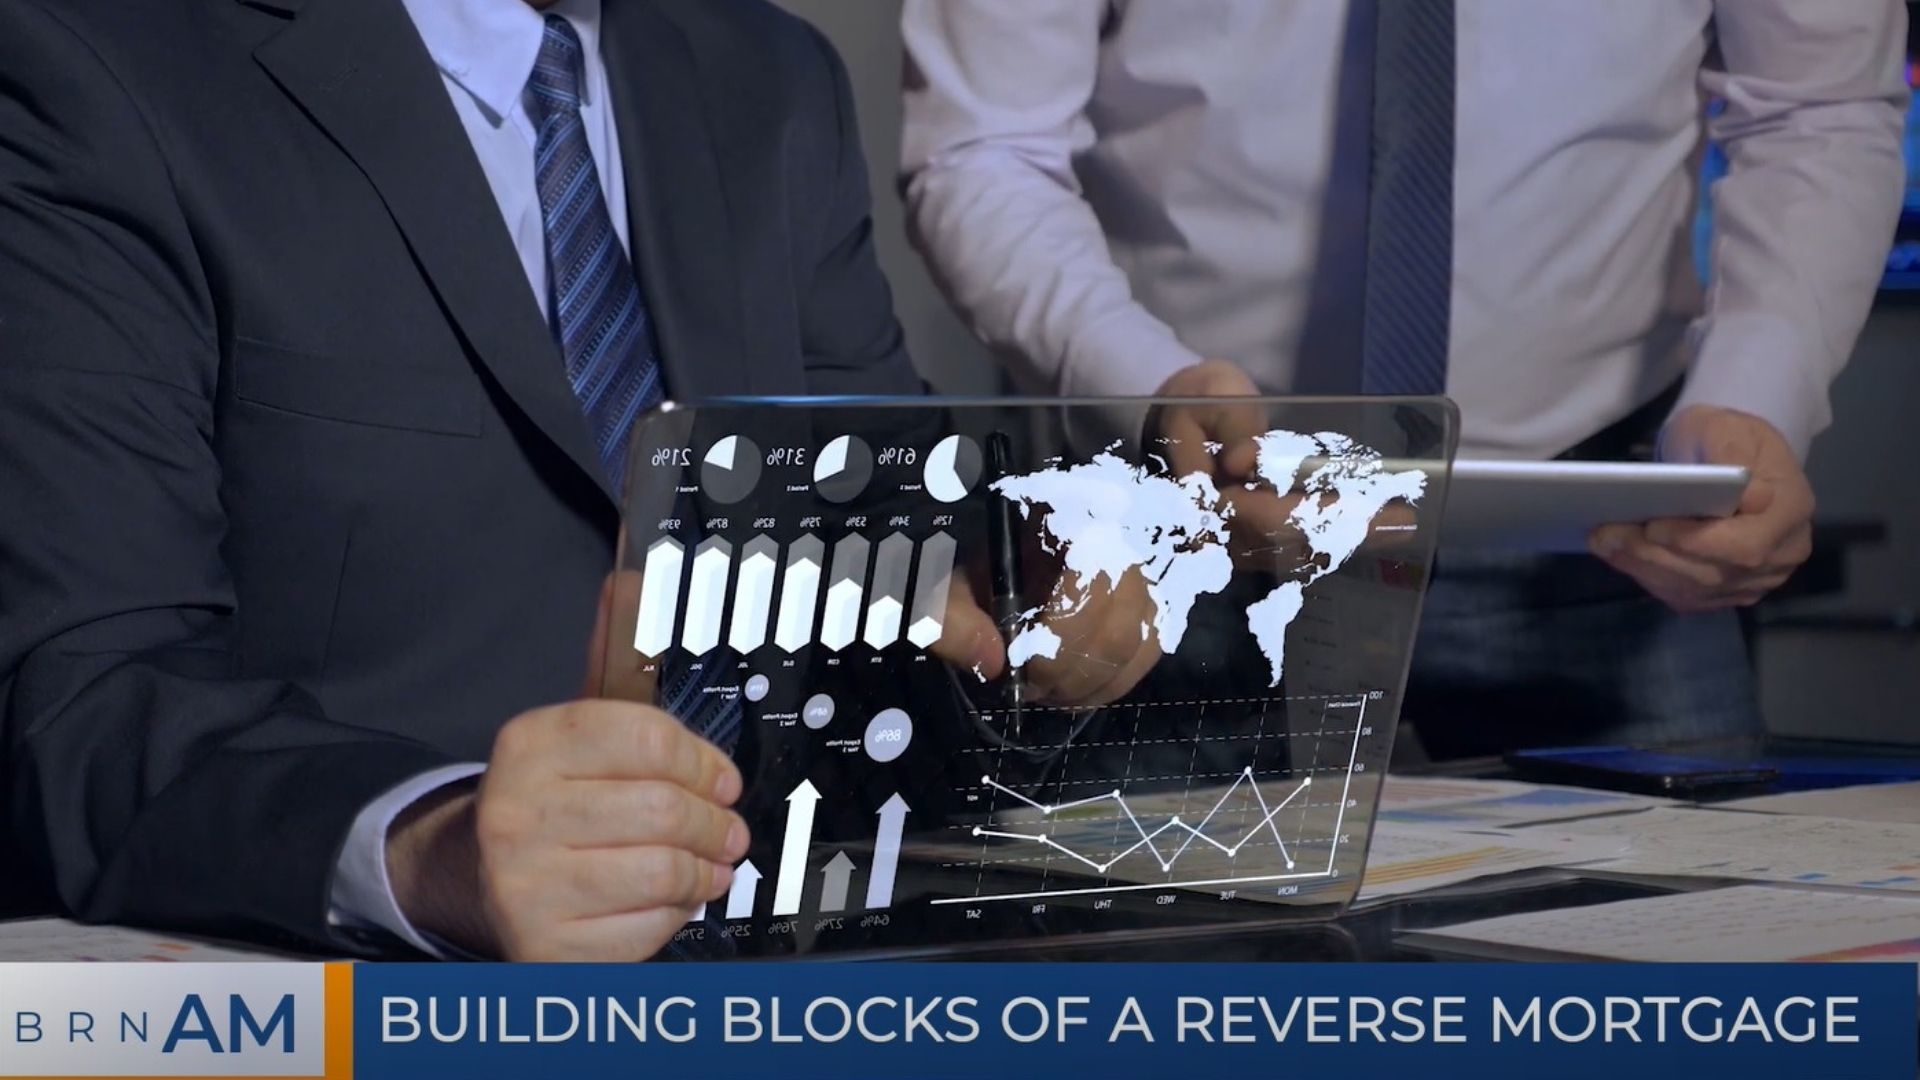 BRN AM   Building blocks of a reverse mortgage   Ryan Ponsford with American Advisors Group